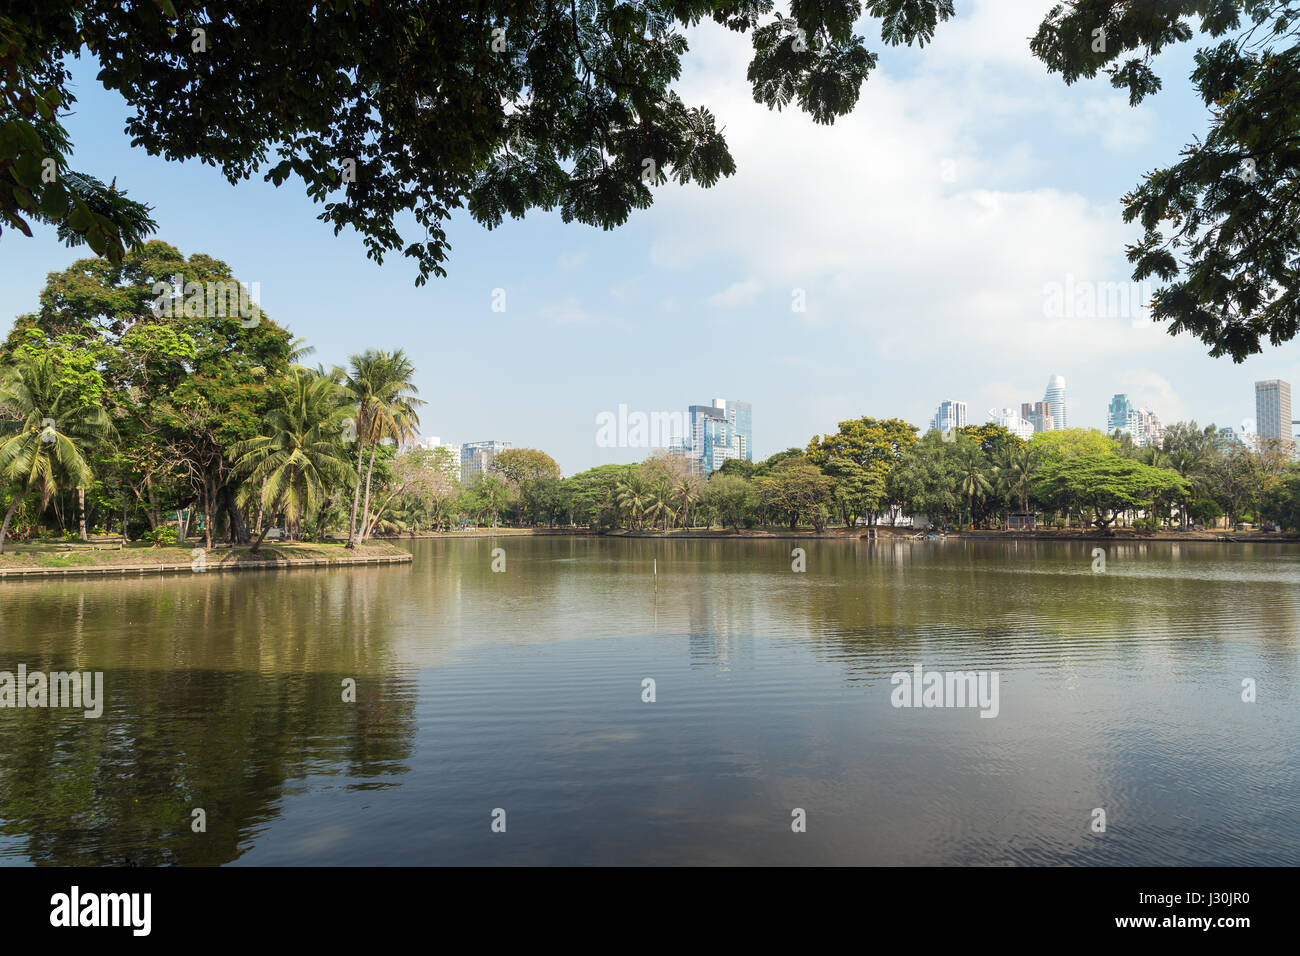 View of palm trees and lake at the Lumpini (Lumphini) Park in Bangkok, Thailand. - Stock Image